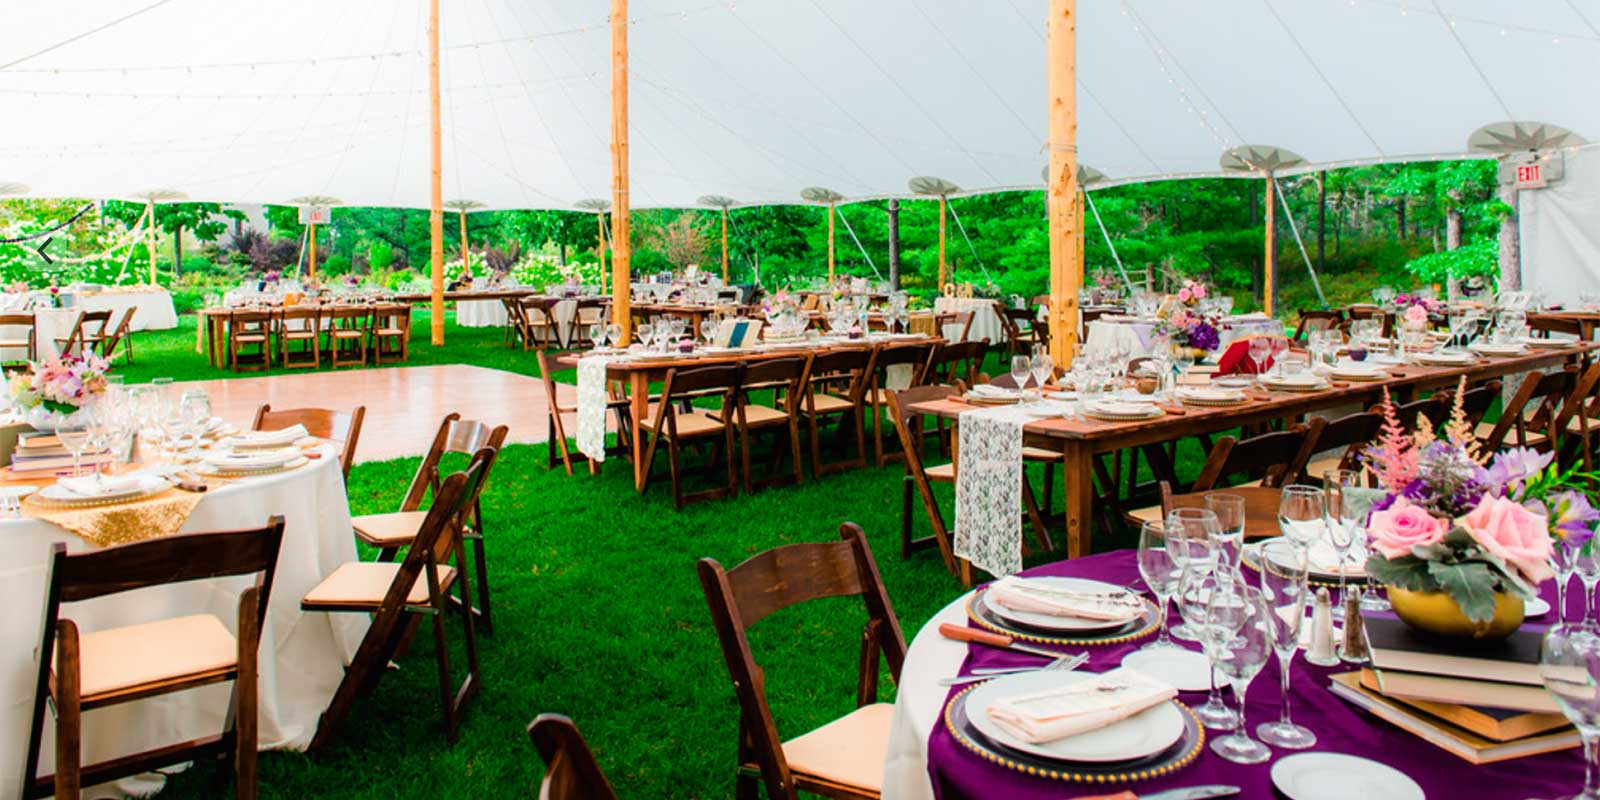 About NorthEast Tent & Event Rentals